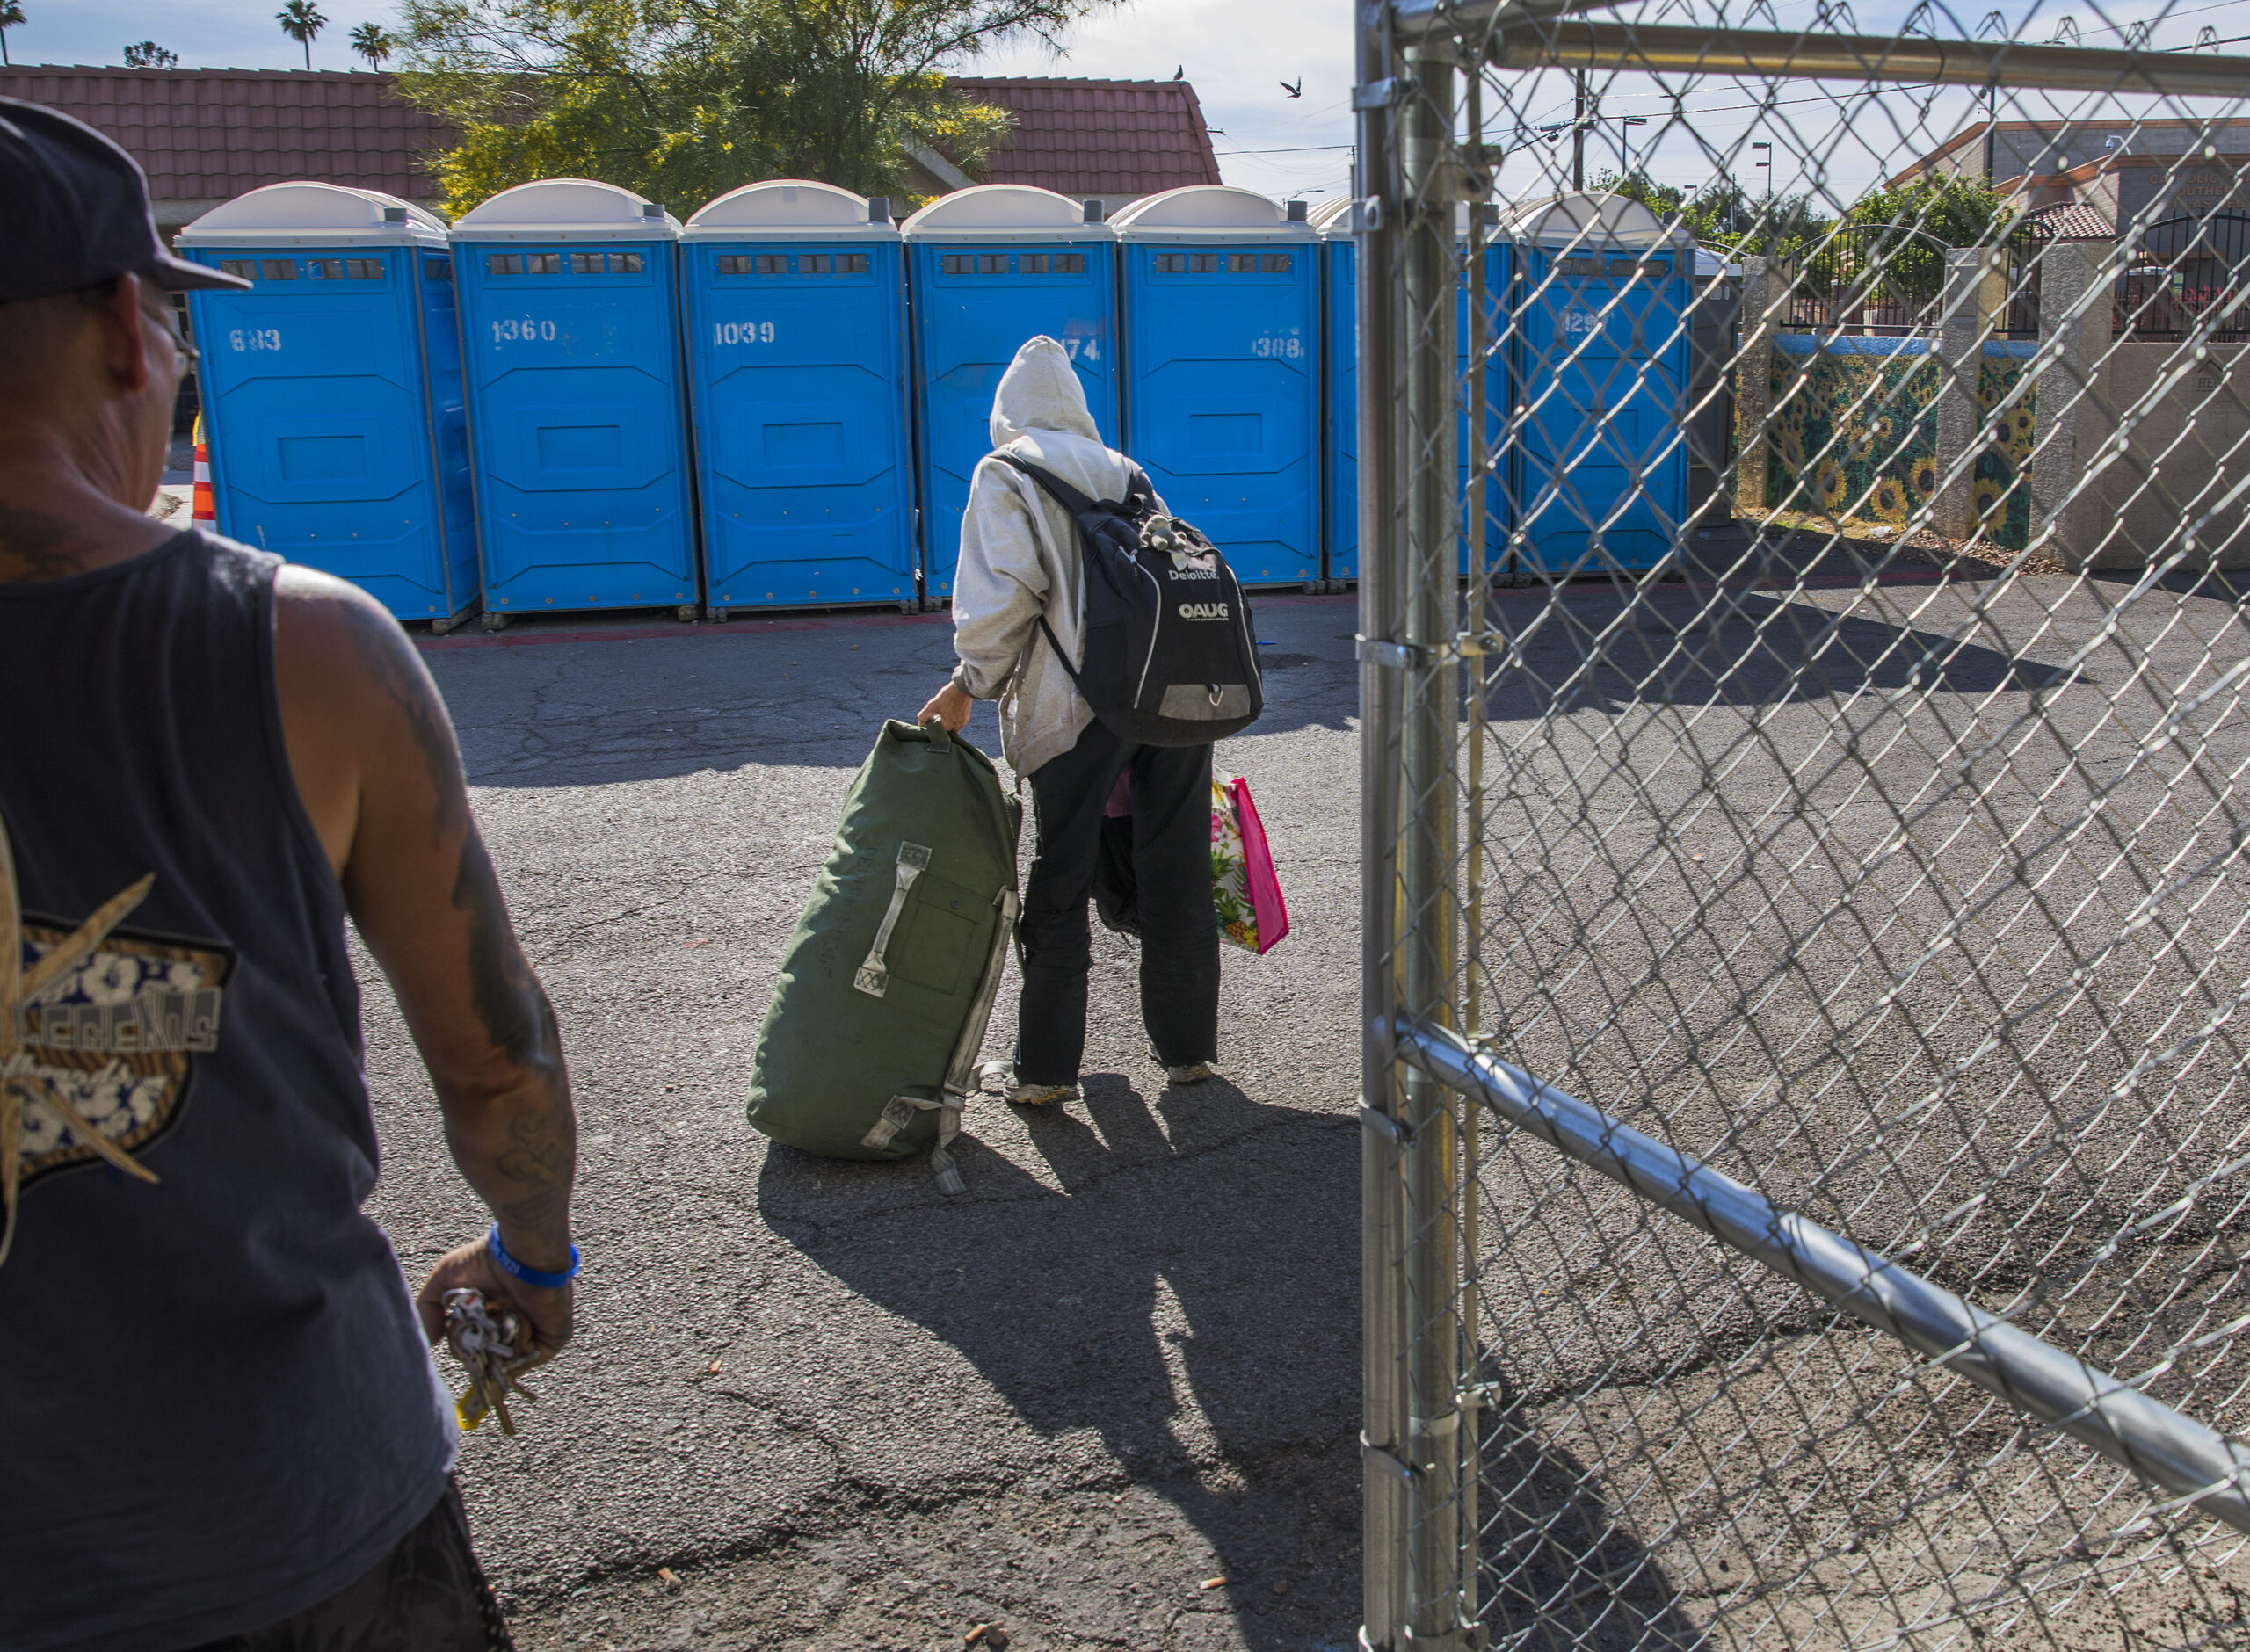 A woman carries her belongings at The Courtyard, a city of Las Vegas operated day shelter for homeless